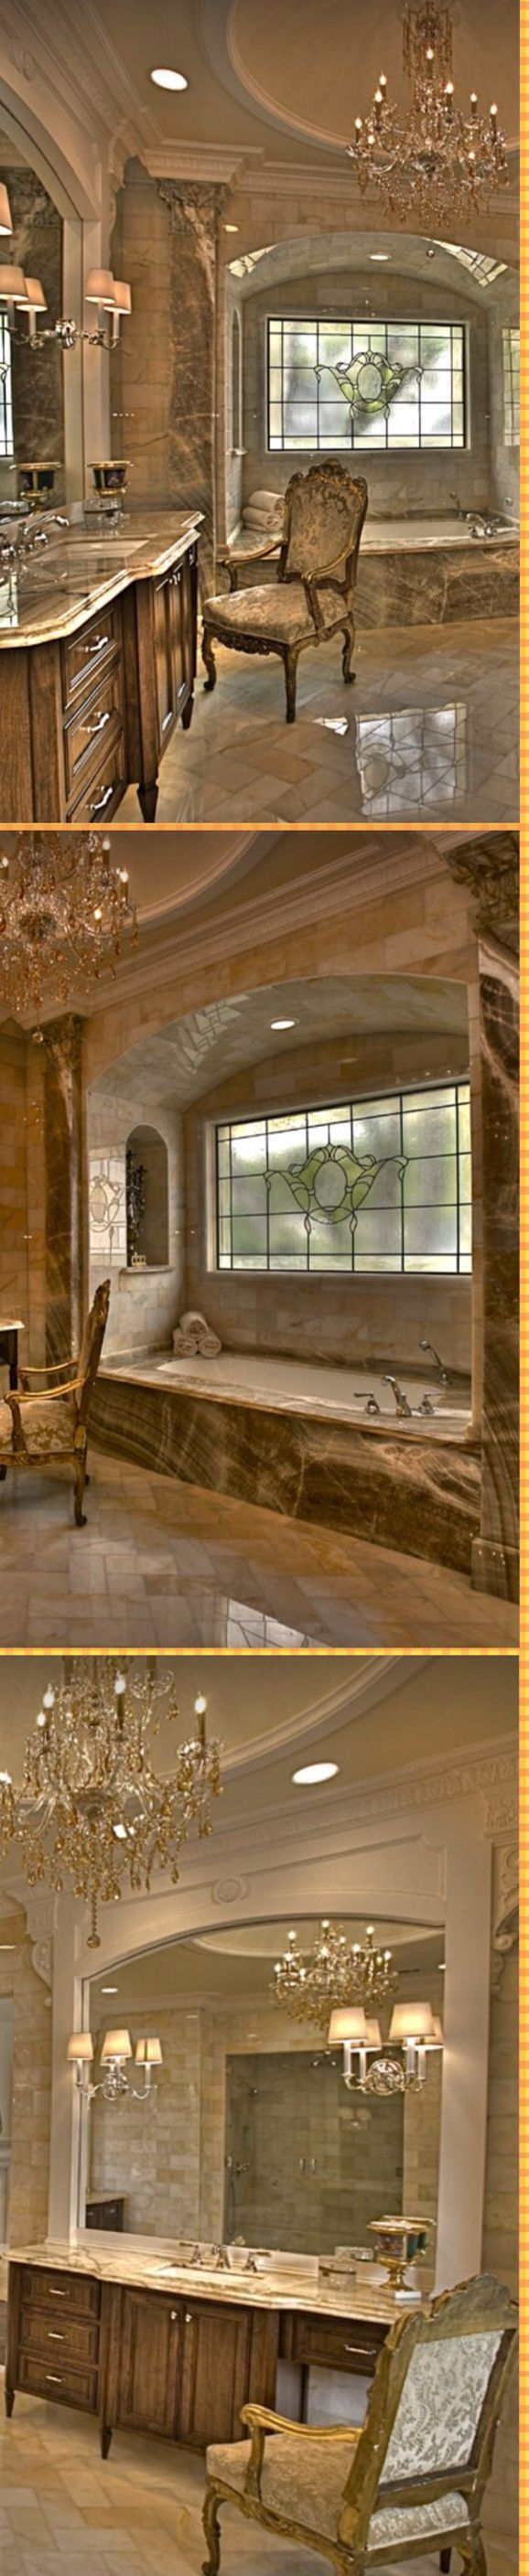 ideas for bathrooms decorating%0A Find More Accessories  u     Decorative Ideas for Your Bathroom at  http   Centophobe